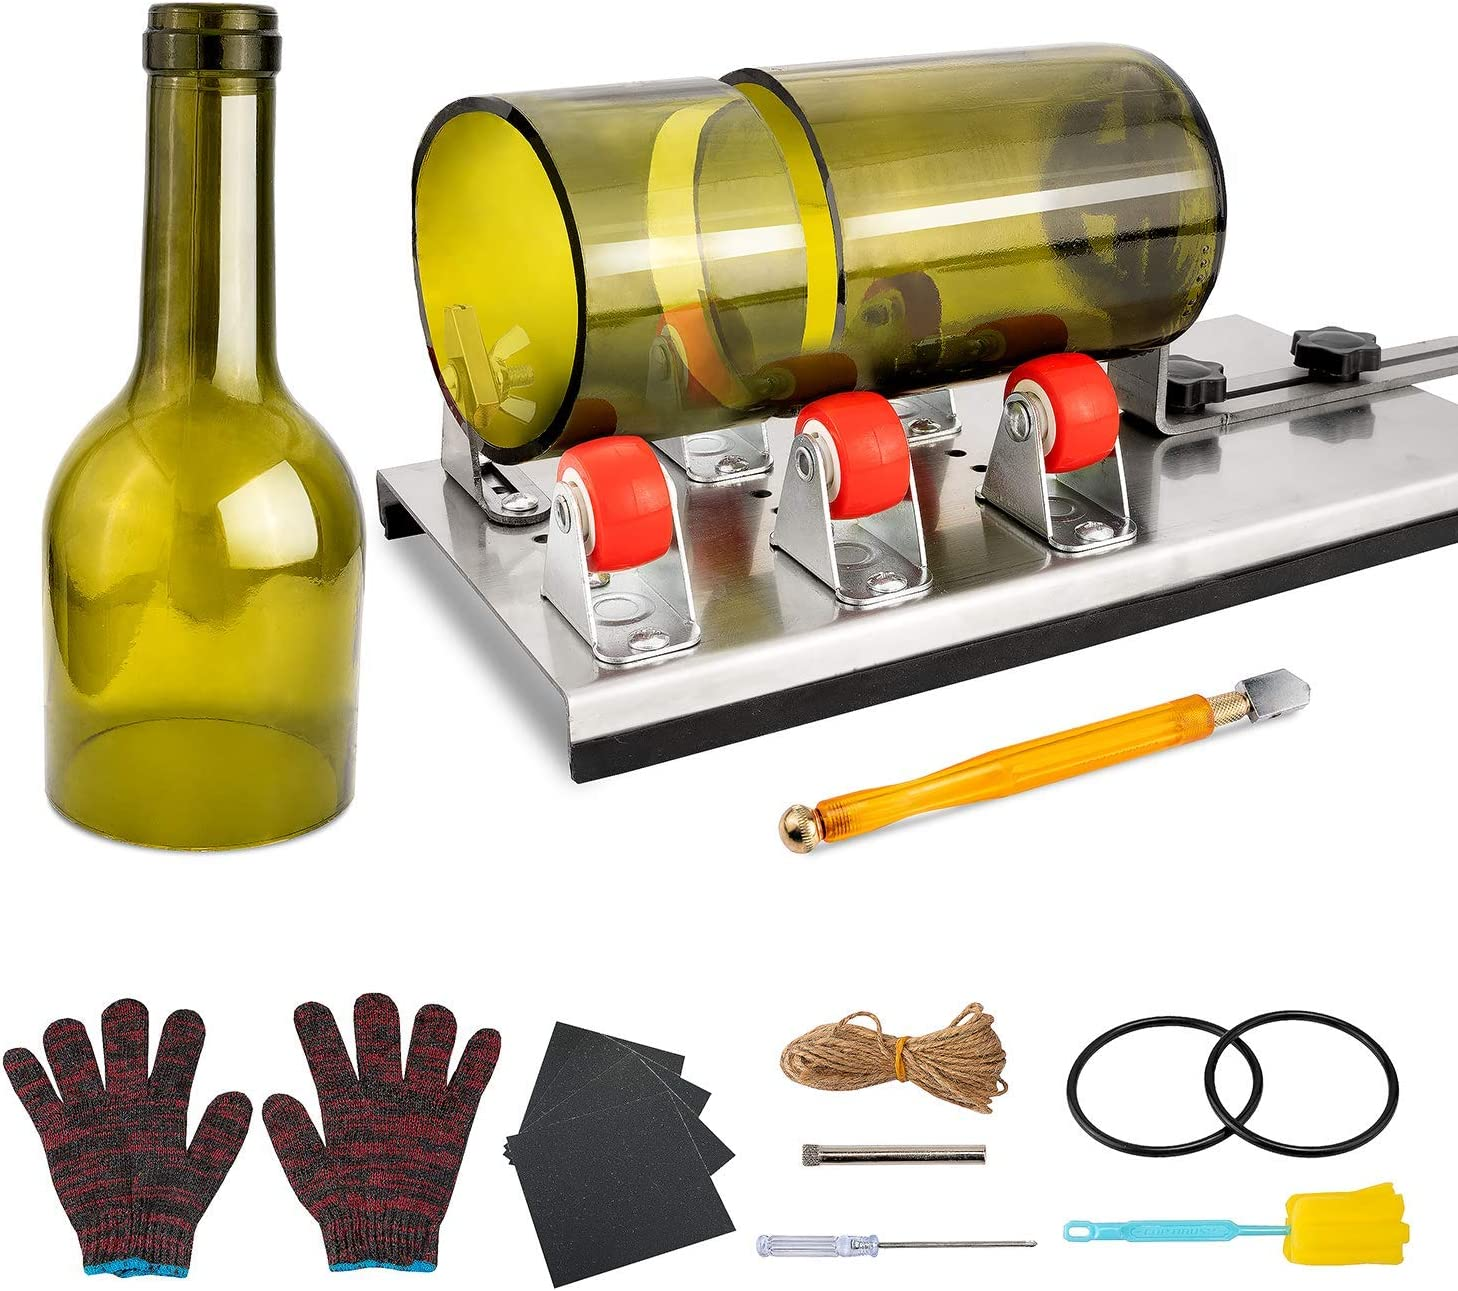 Precise Wine Beer Glass Bottle Cutting Tool Recycle Kit DIY Craft Cutter Machine